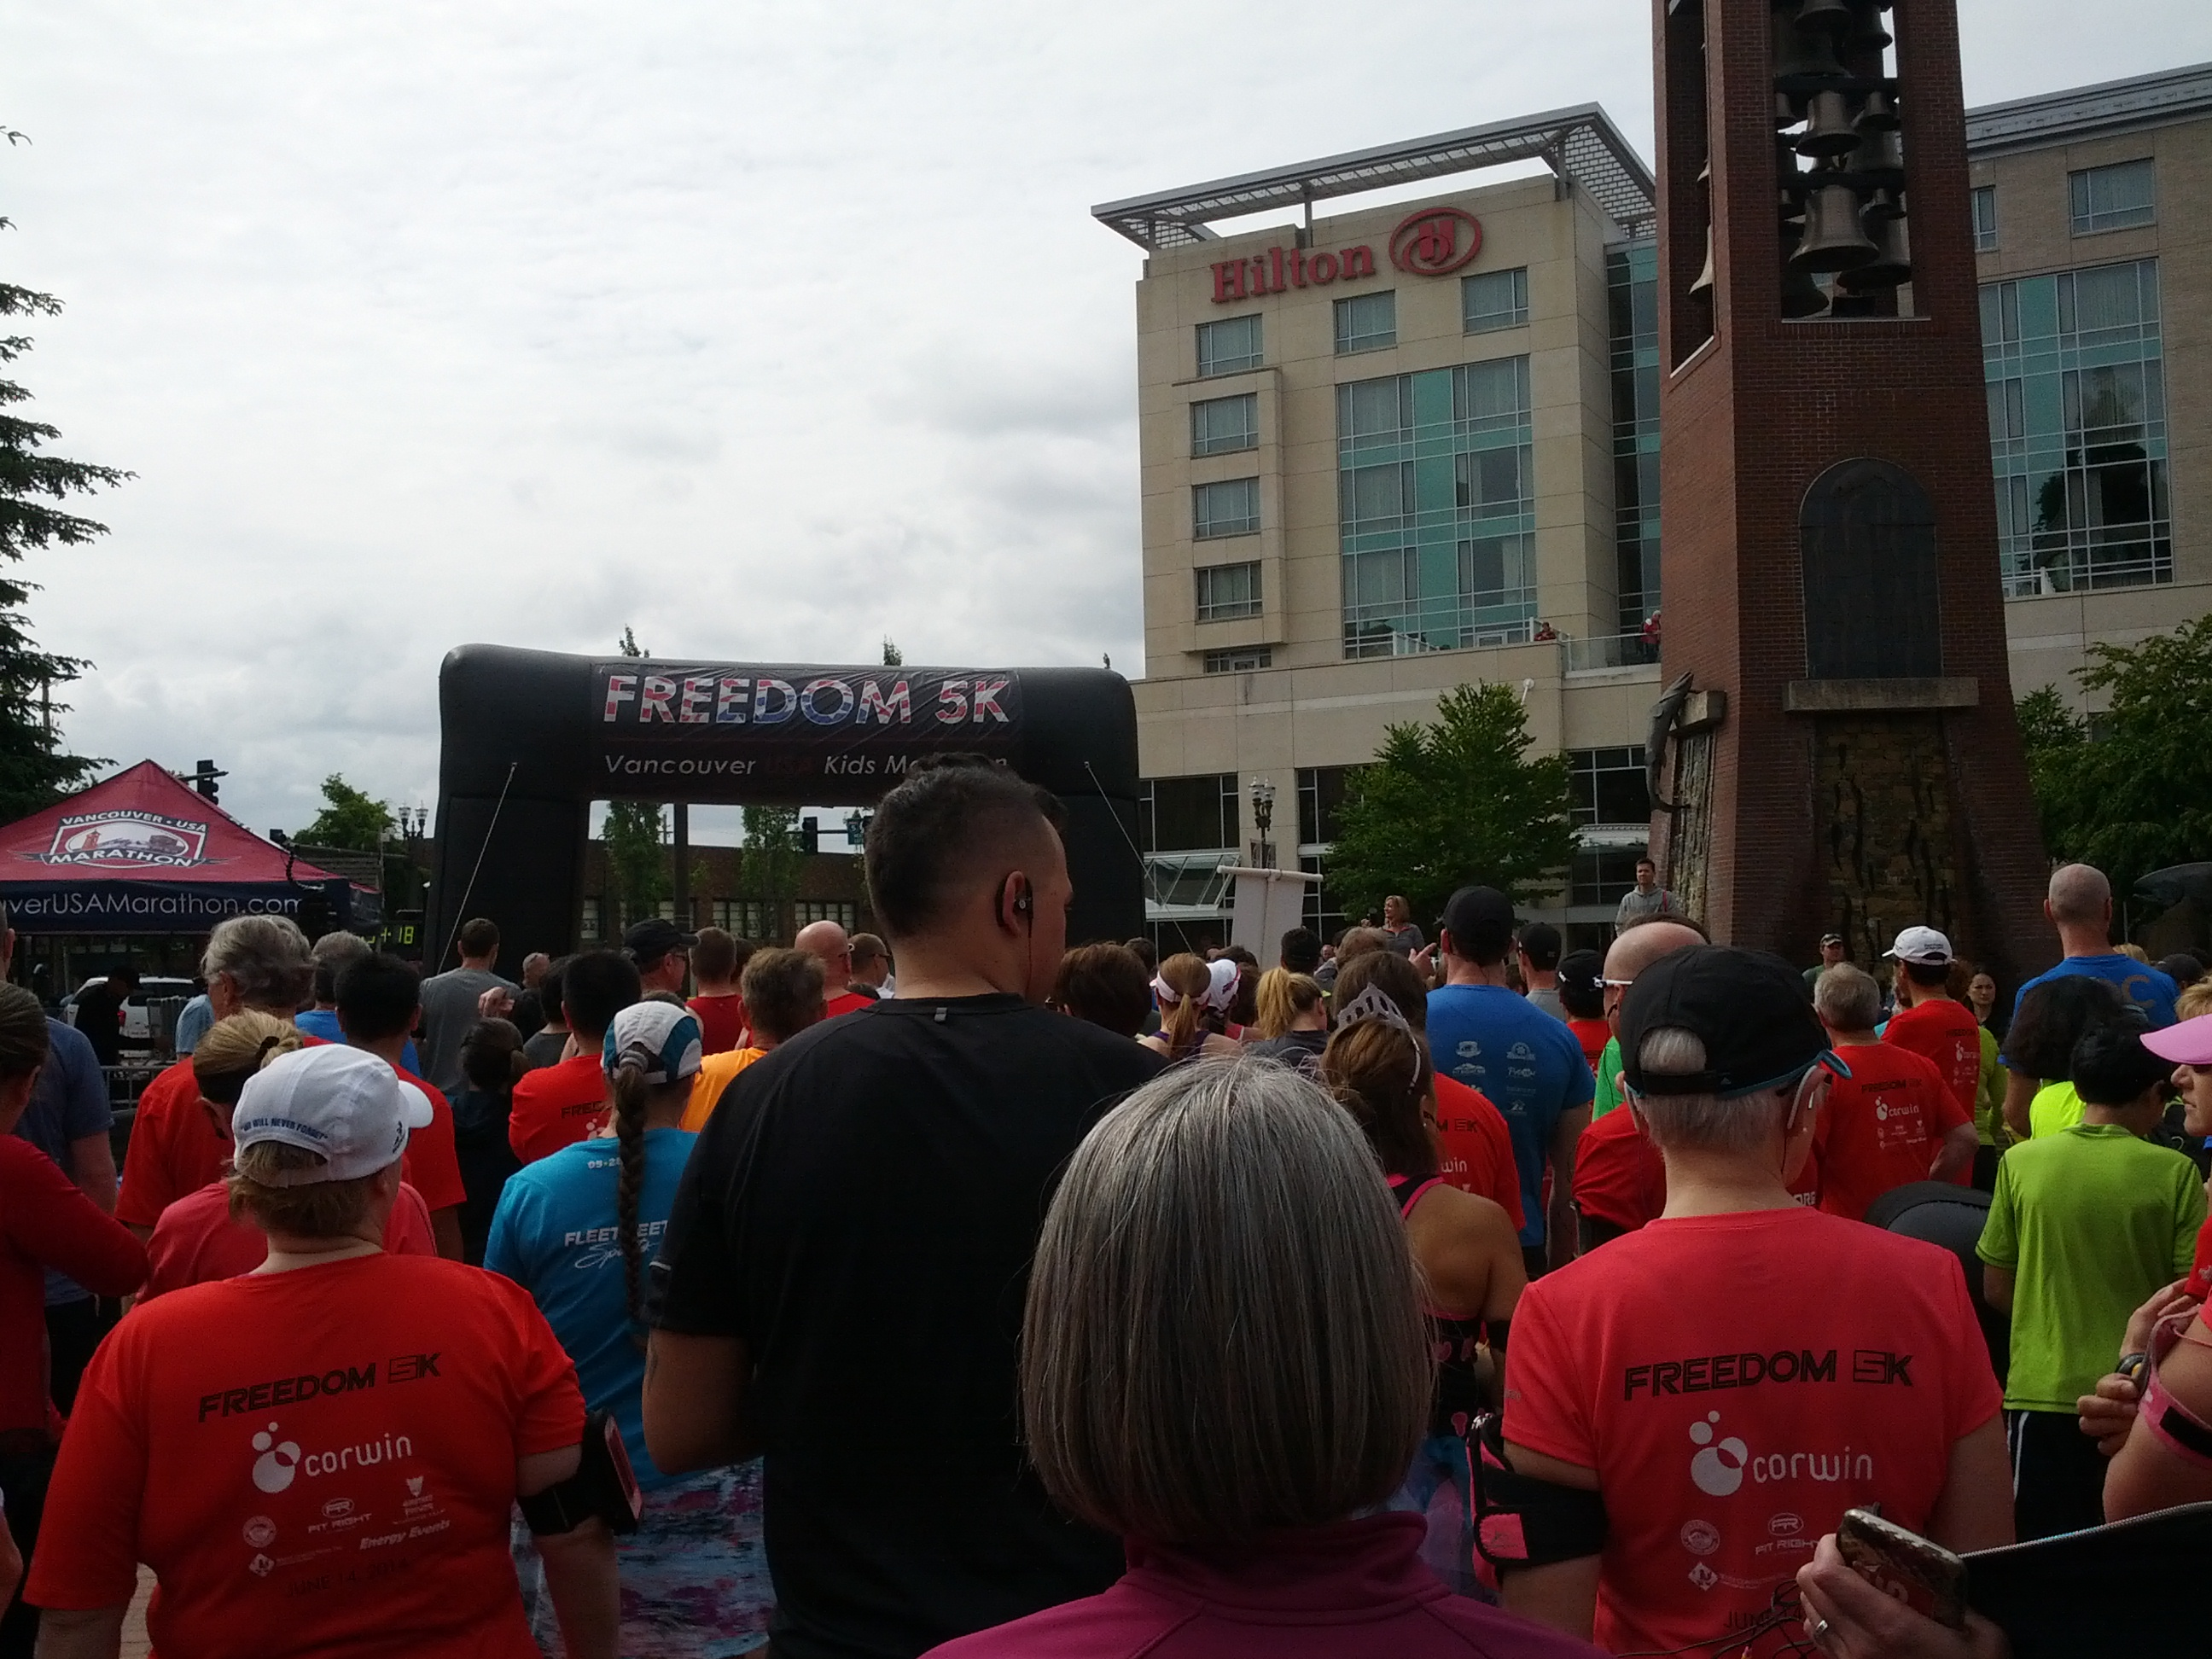 Just before the start of the VUM Freedom 5K on June 14, 2014 (photo by Tung Yin)